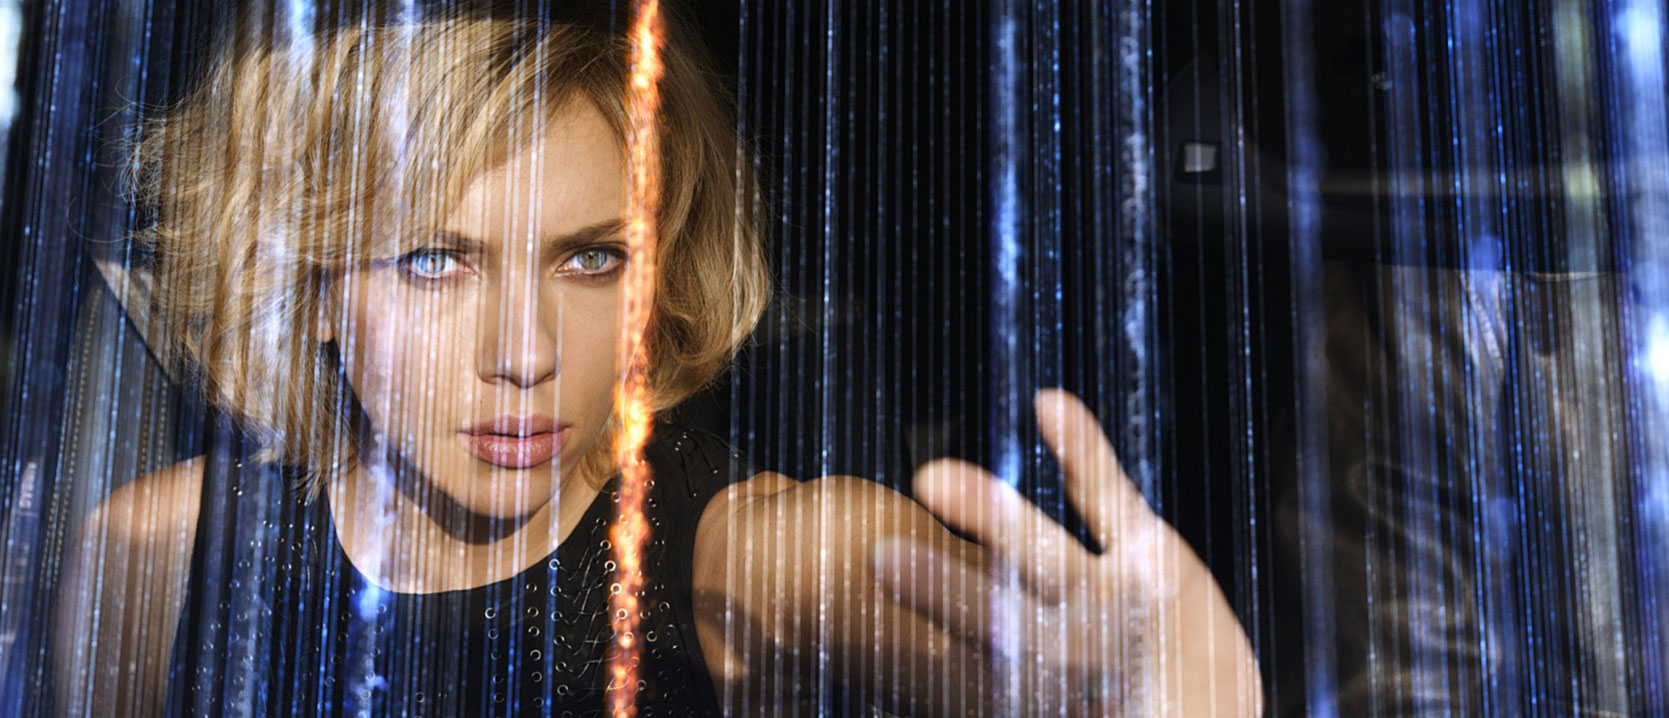 Luc Besson's 'Lucy' opens today and is the director's first all digital movie.